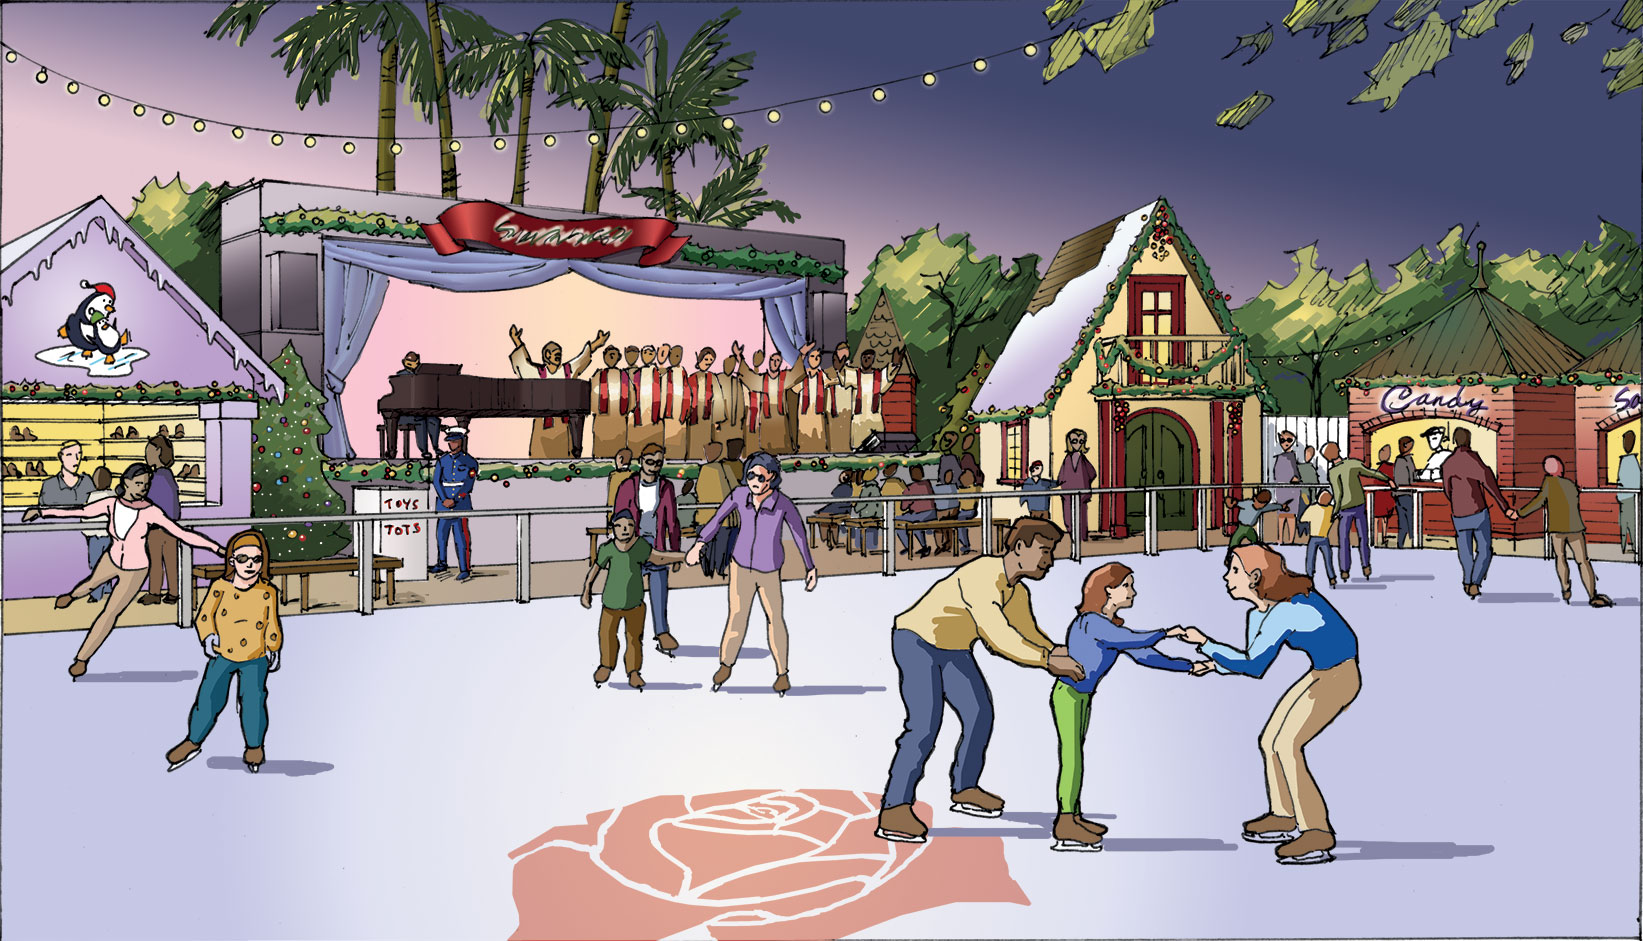 Concept Illustration for outdoor skating rink. Client: Kenneth McPheeters.